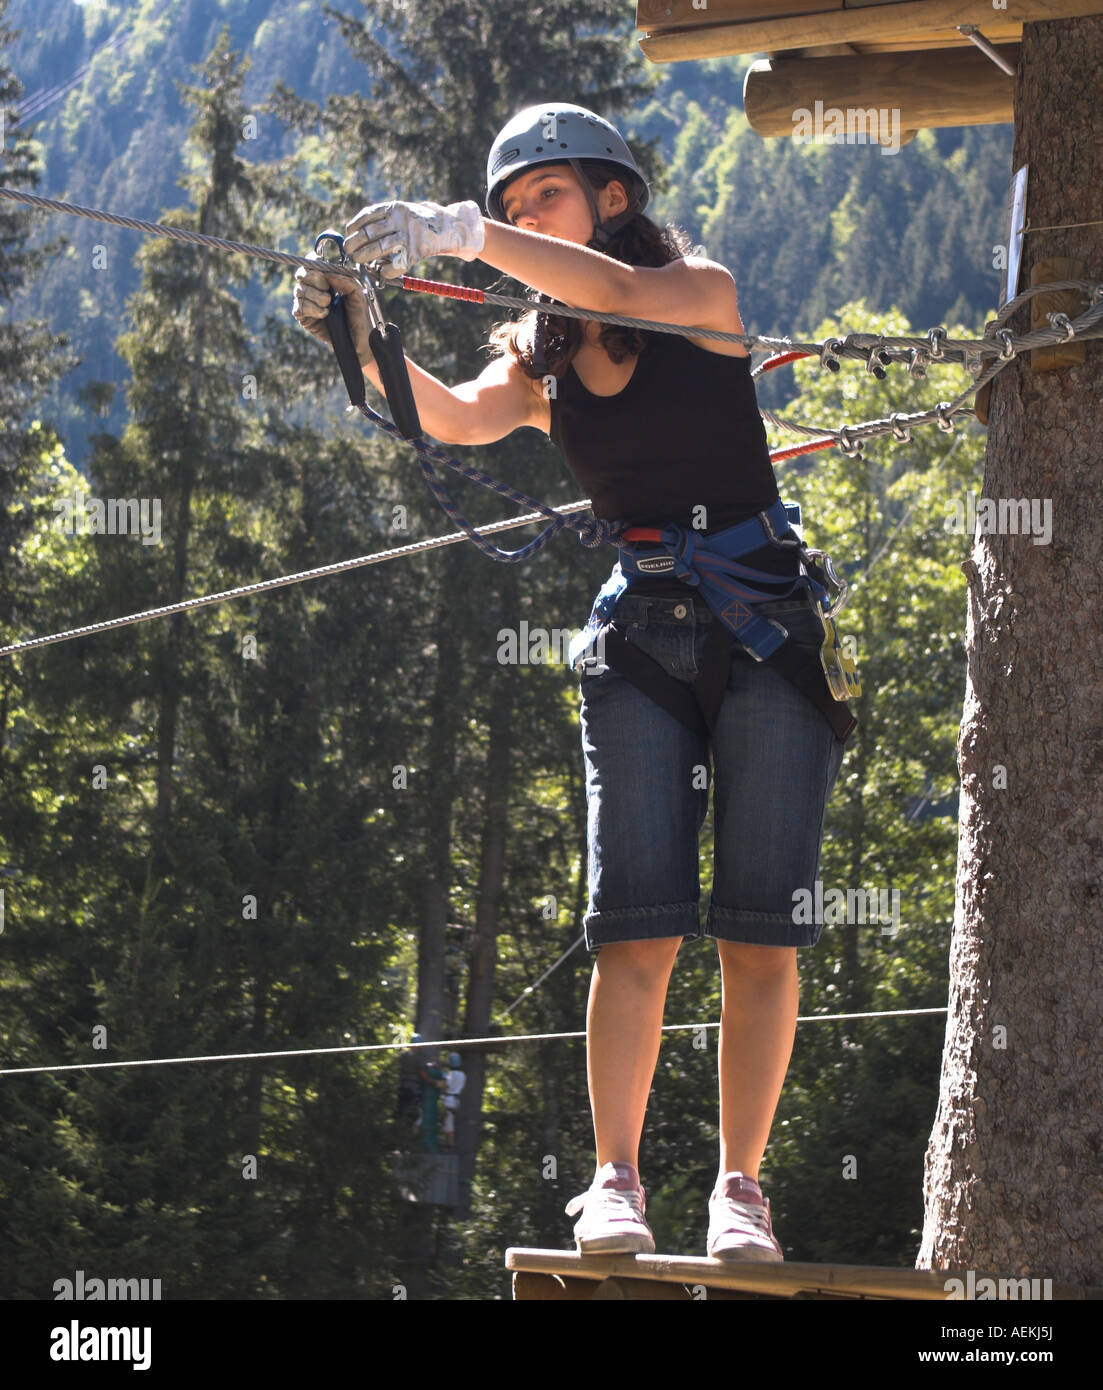 Girl attaches a carabineer clip prior to using a zip wire - Stock Image